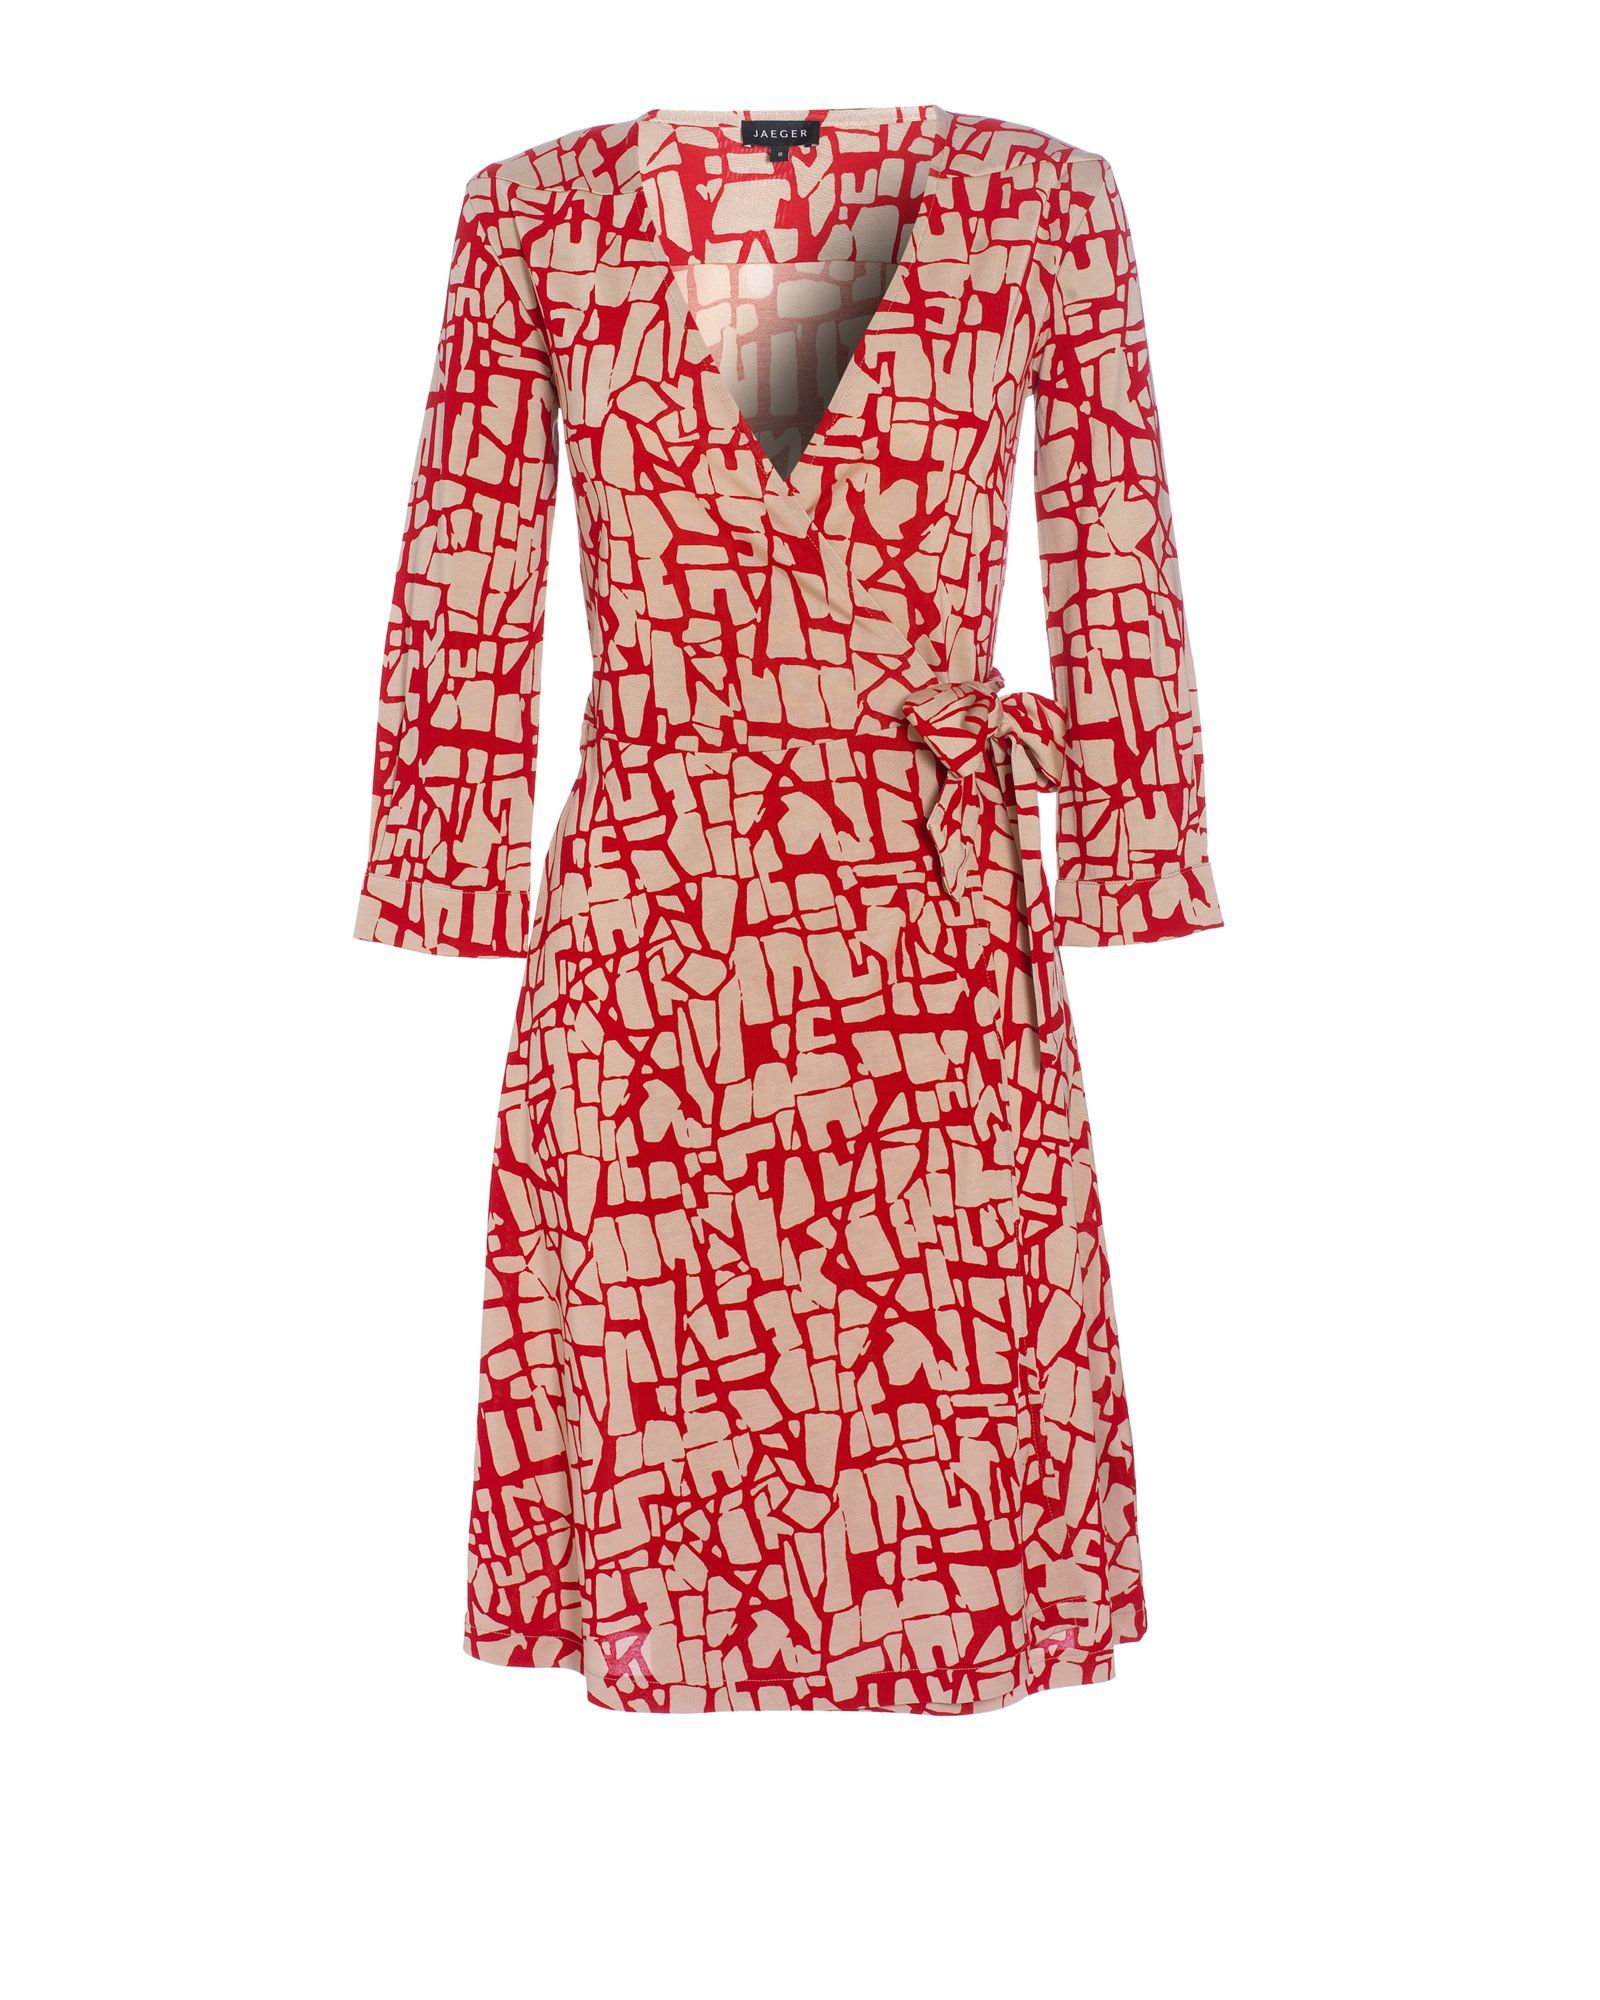 Women's Printed Jersey 3/4 Sleeve Wrap Dress, Red - style: faux wrap/wrap; neckline: v-neck; pattern: print, patterned/print; waist detail: belted waist/tie at waist/drawstring; predominant colour: true red; occasions: casual, work; length: just above the knee; fit: body skimming; fibres: polyester/polyamide - 100%; material texture: jersey; trends: prints; sleeve length: 3/4 length; sleeve style: standard; pattern type: fabric; pattern size: standard; texture group: jersey - stretchy/drapey